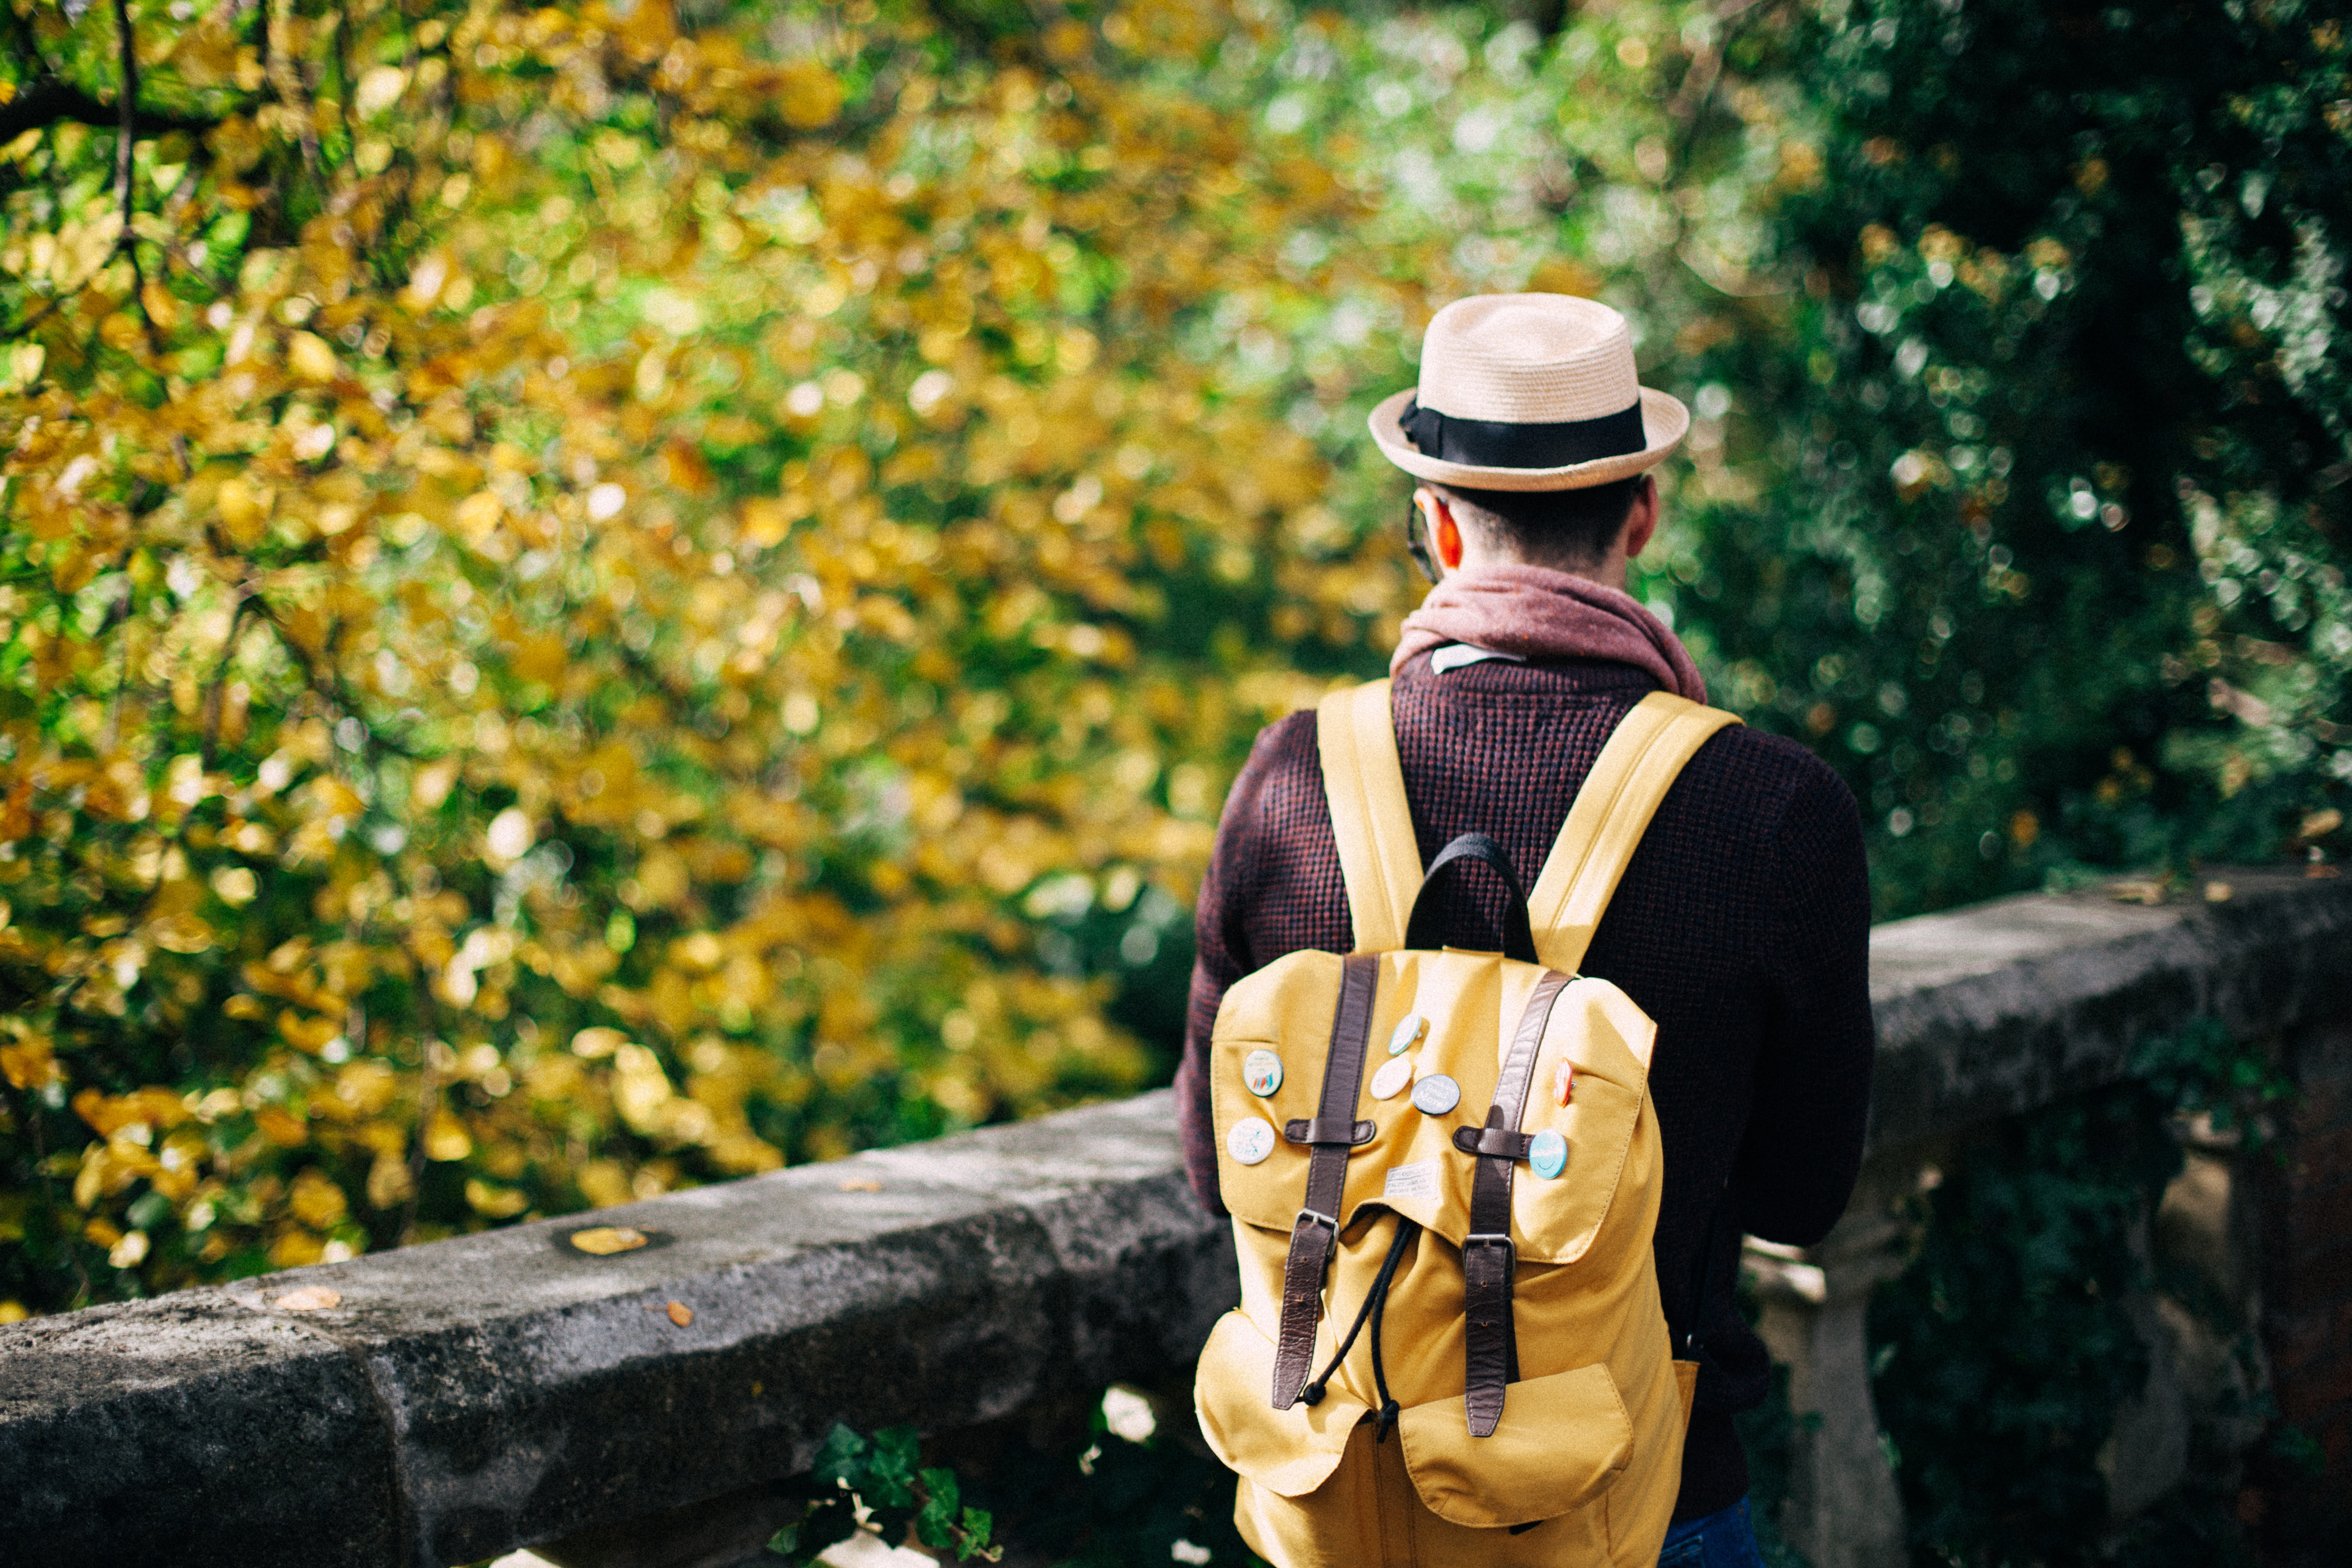 A man wearing a hat and traveling alongside the trees on a walking path in Richmond